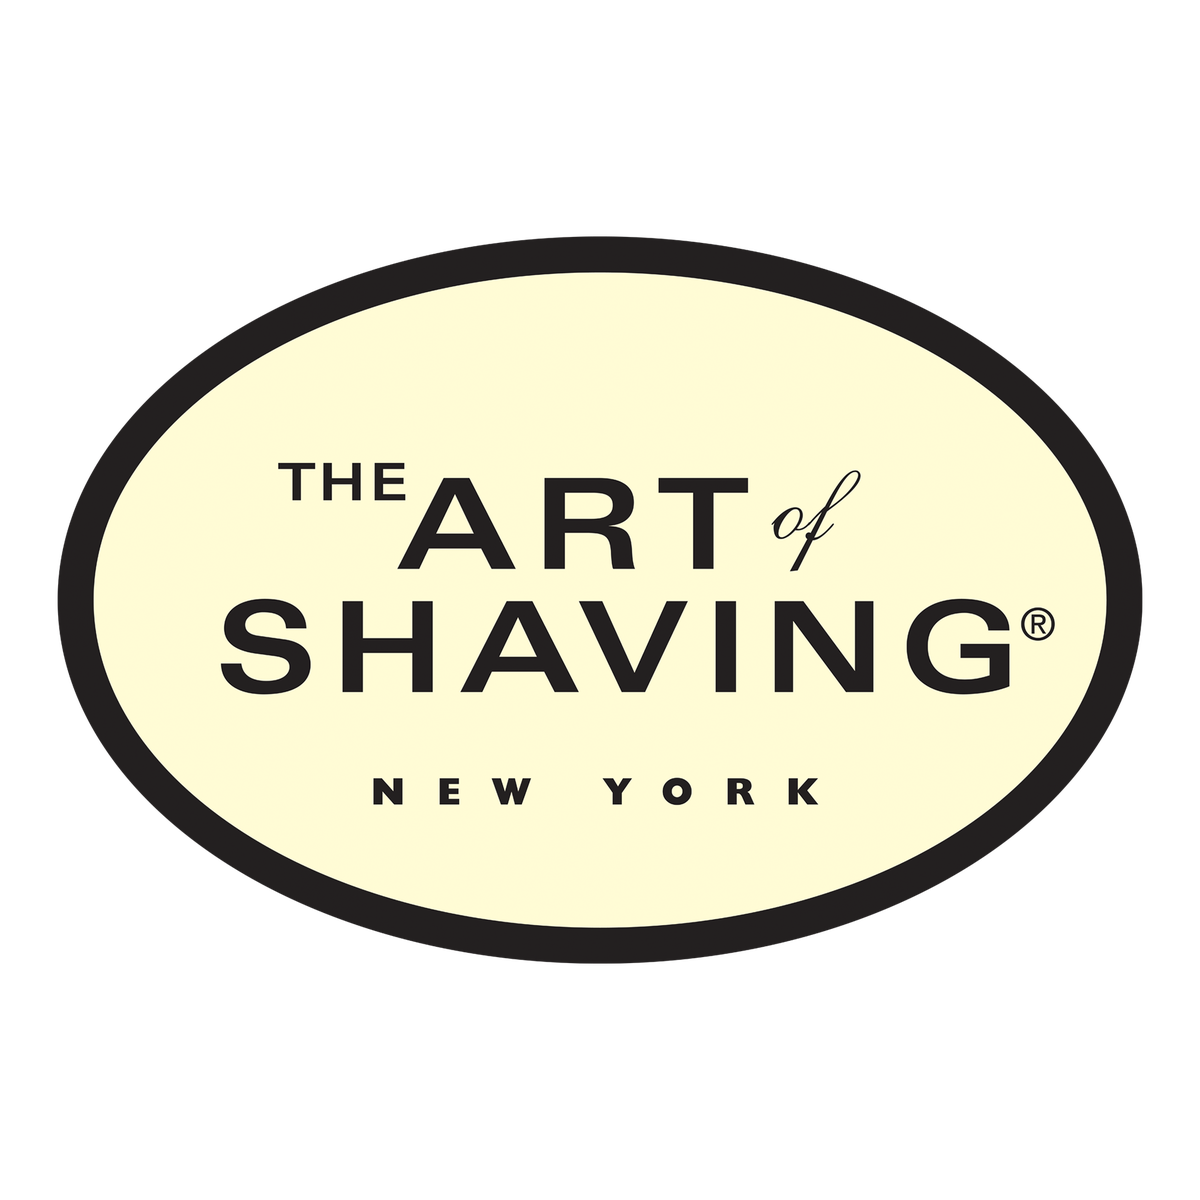 The Art of Shaving - ad image